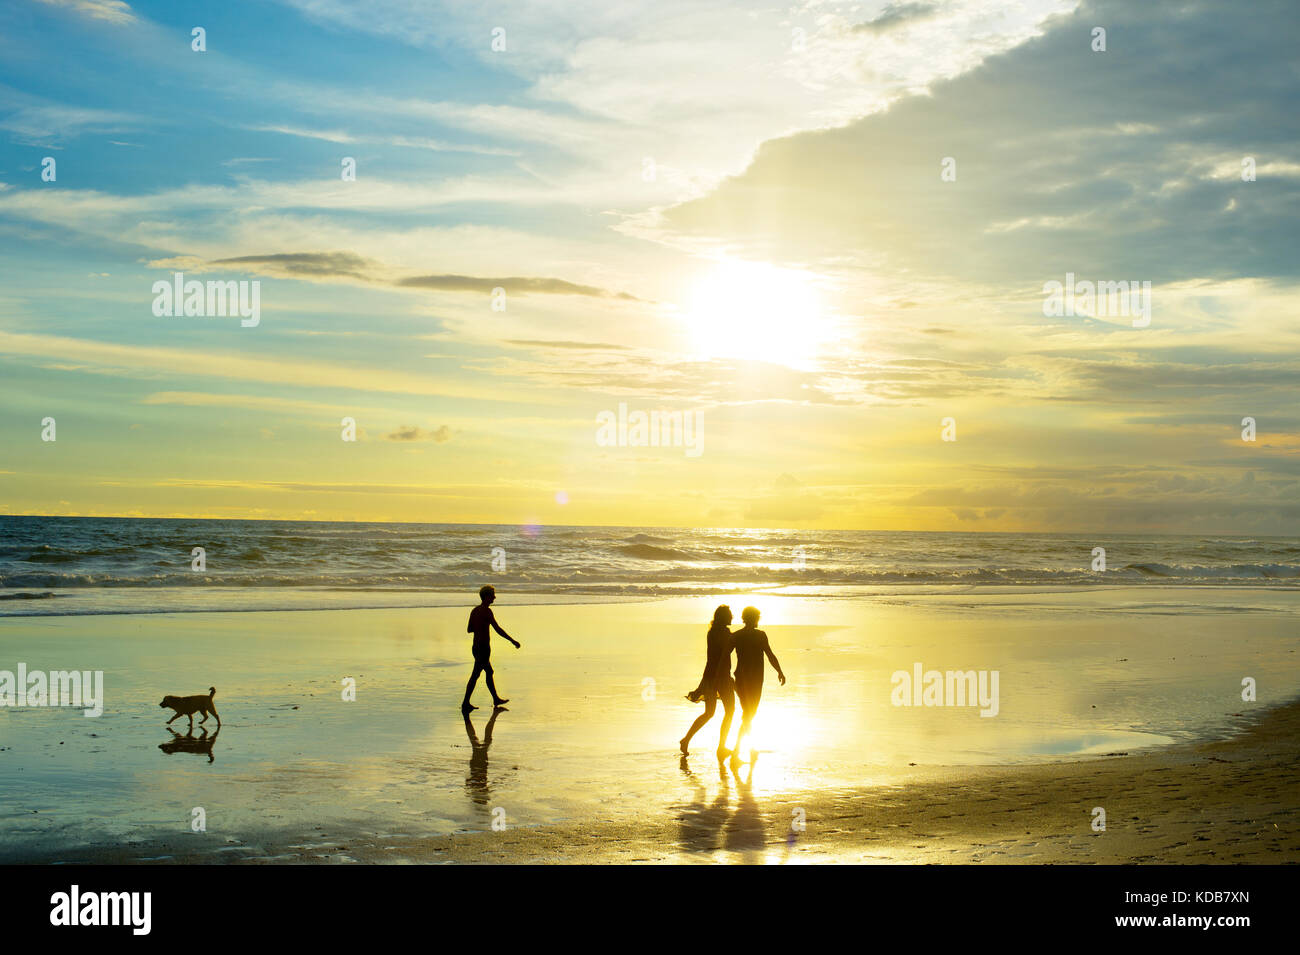 People walking on tropical Bali ocean beach at sunset. Indonesia Stock Photo